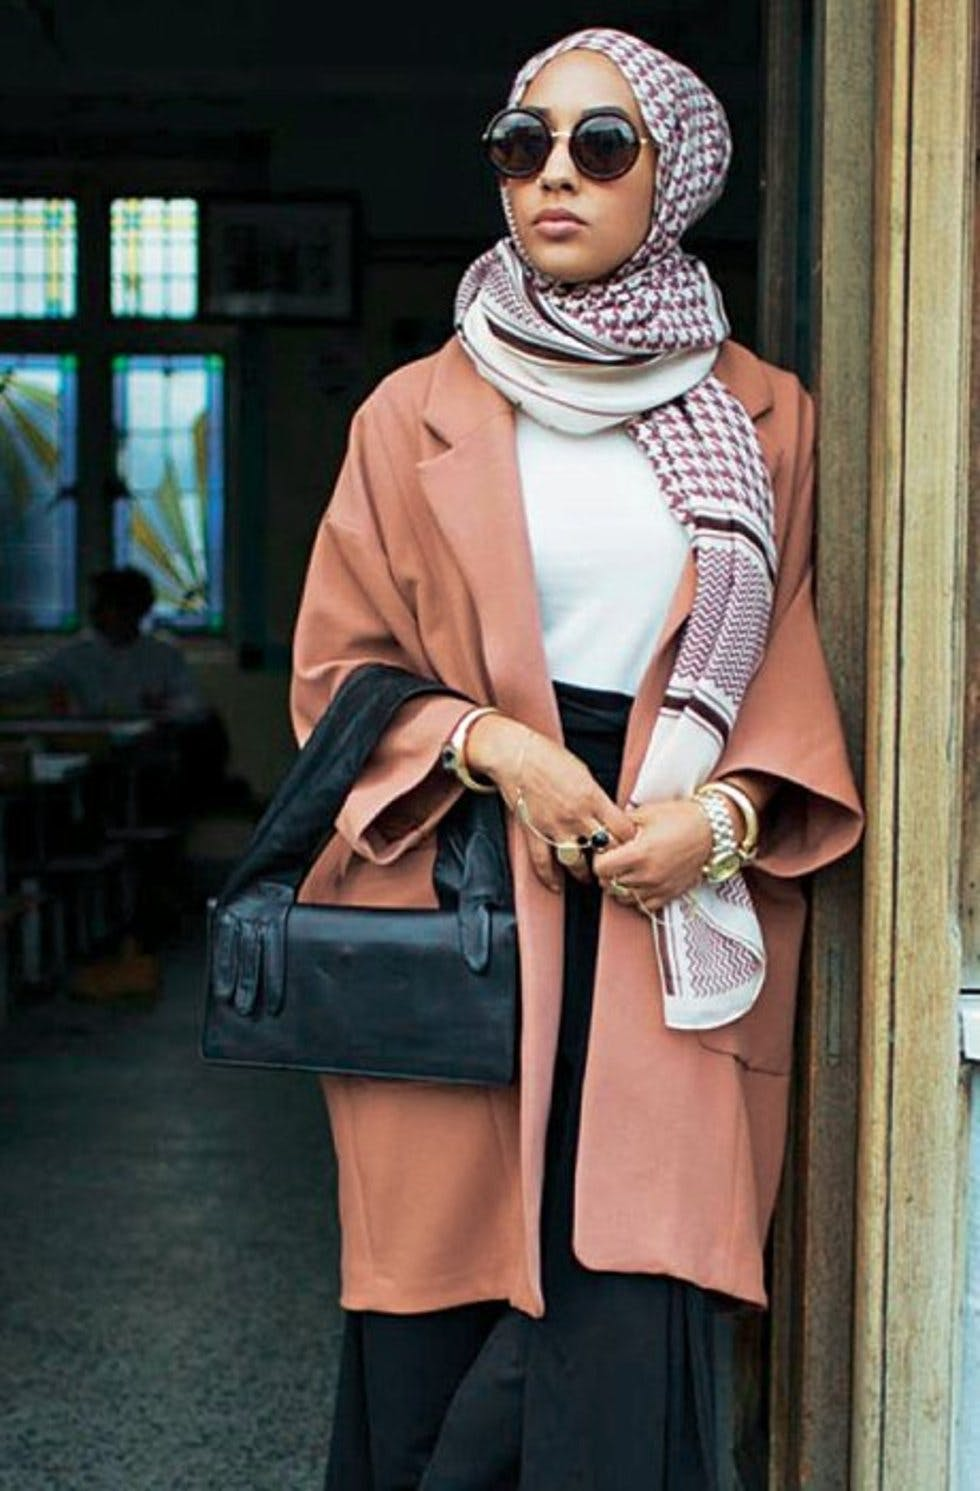 """b94d4d9ac38c The Londoner made headlines as H&M's first Muslim model in a hijab. As a  model and motivational speaker, she hopes to """"inspire women all over the  world with ..."""